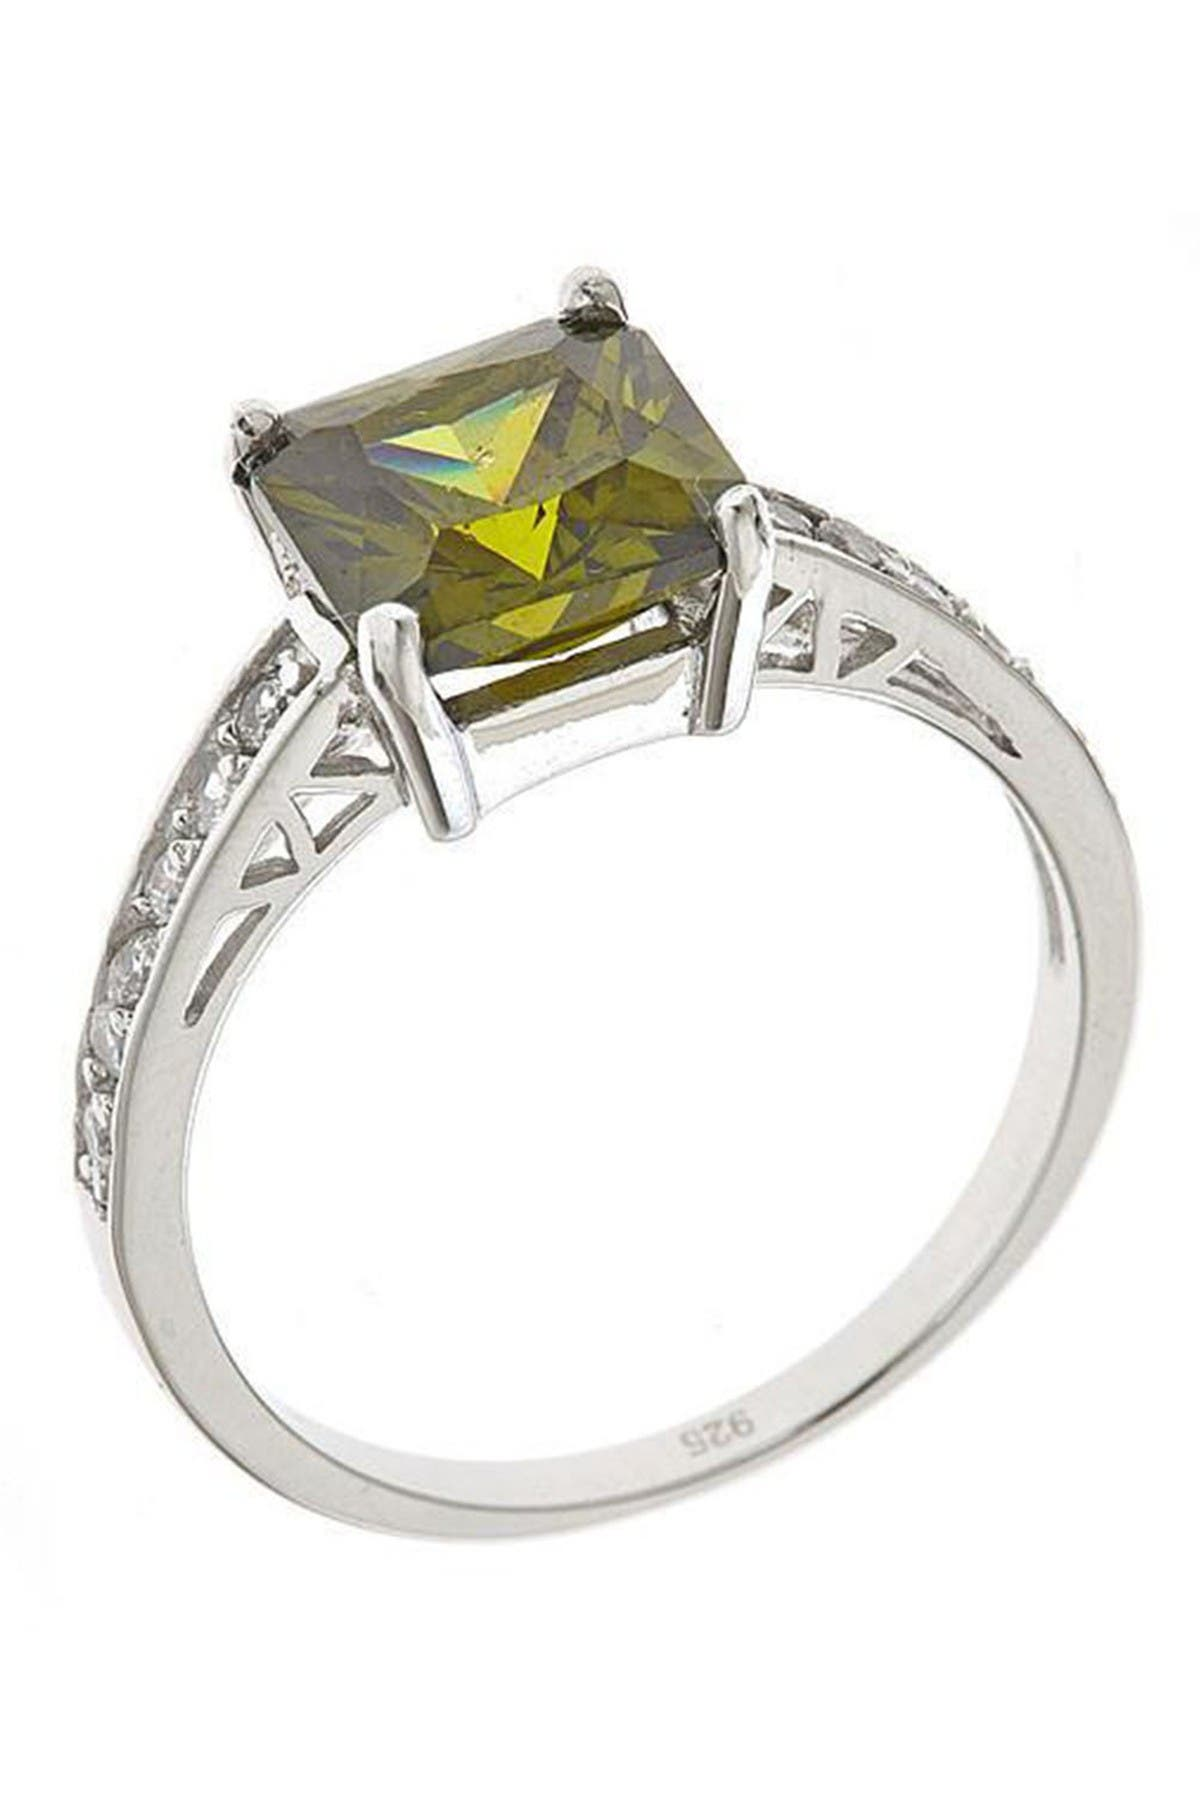 Image of Sterling Forever Sterling Silver Princess Cut Peridot CZ Engagement Ring